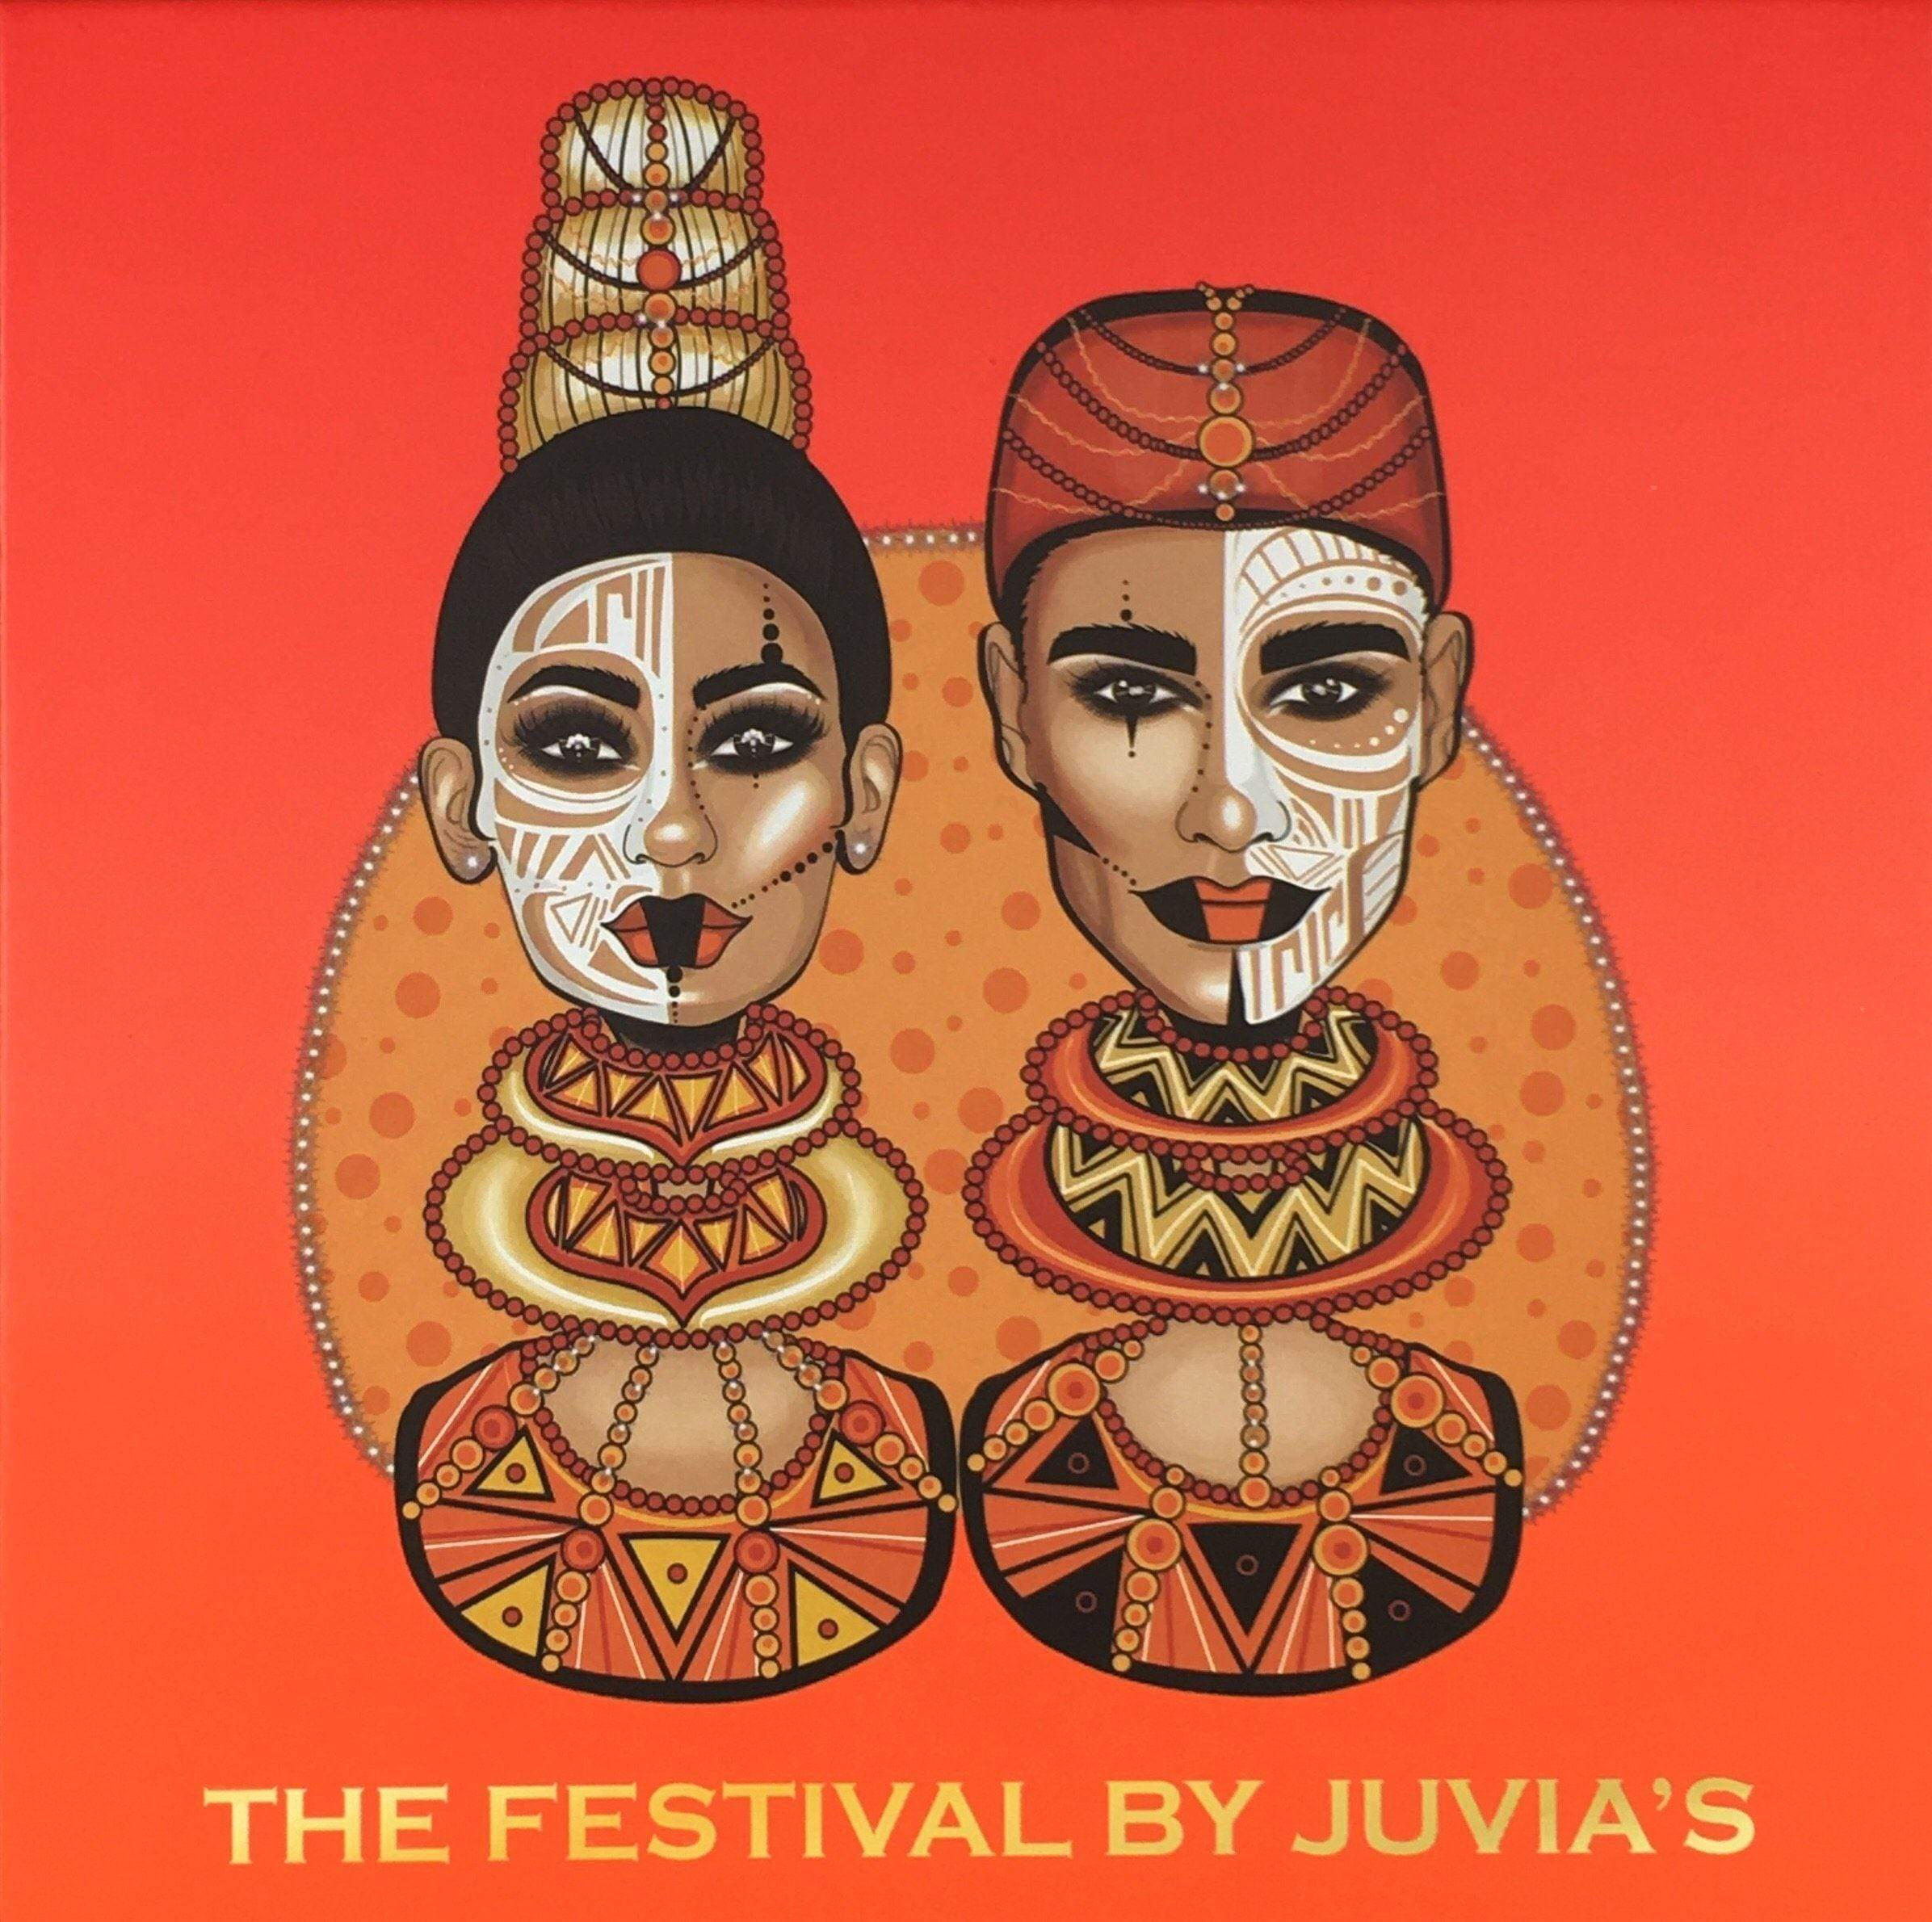 Juvias Place Eyeshadow Juvia's Place The Festival Eyeshadow Palette